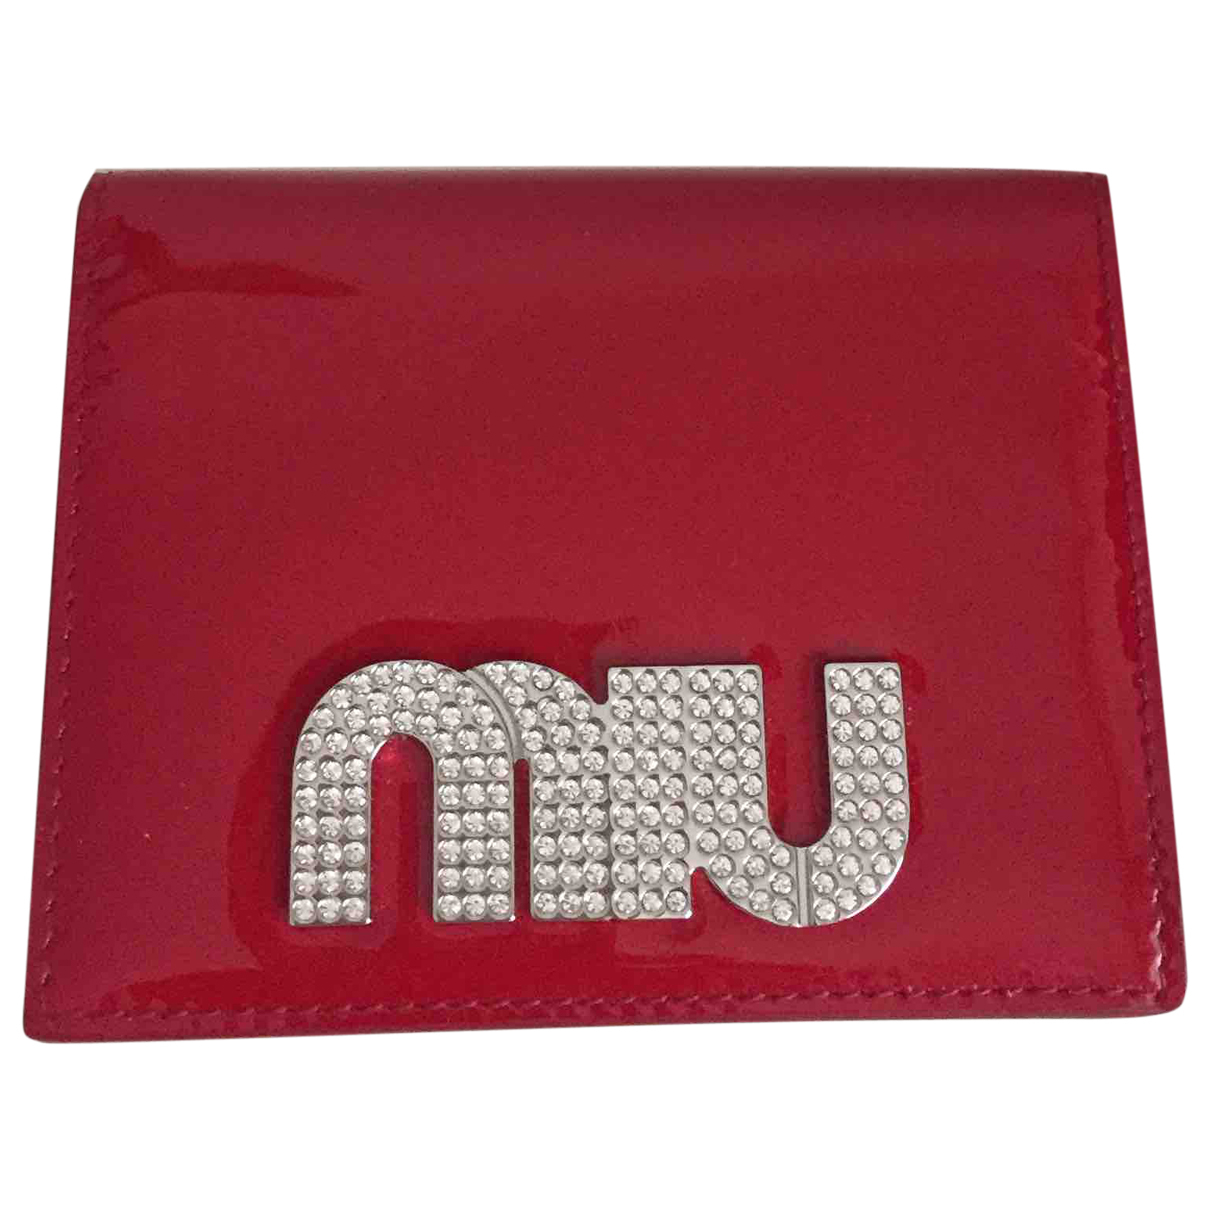 Miu Miu N Red Patent leather Purses, wallet & cases for Women N